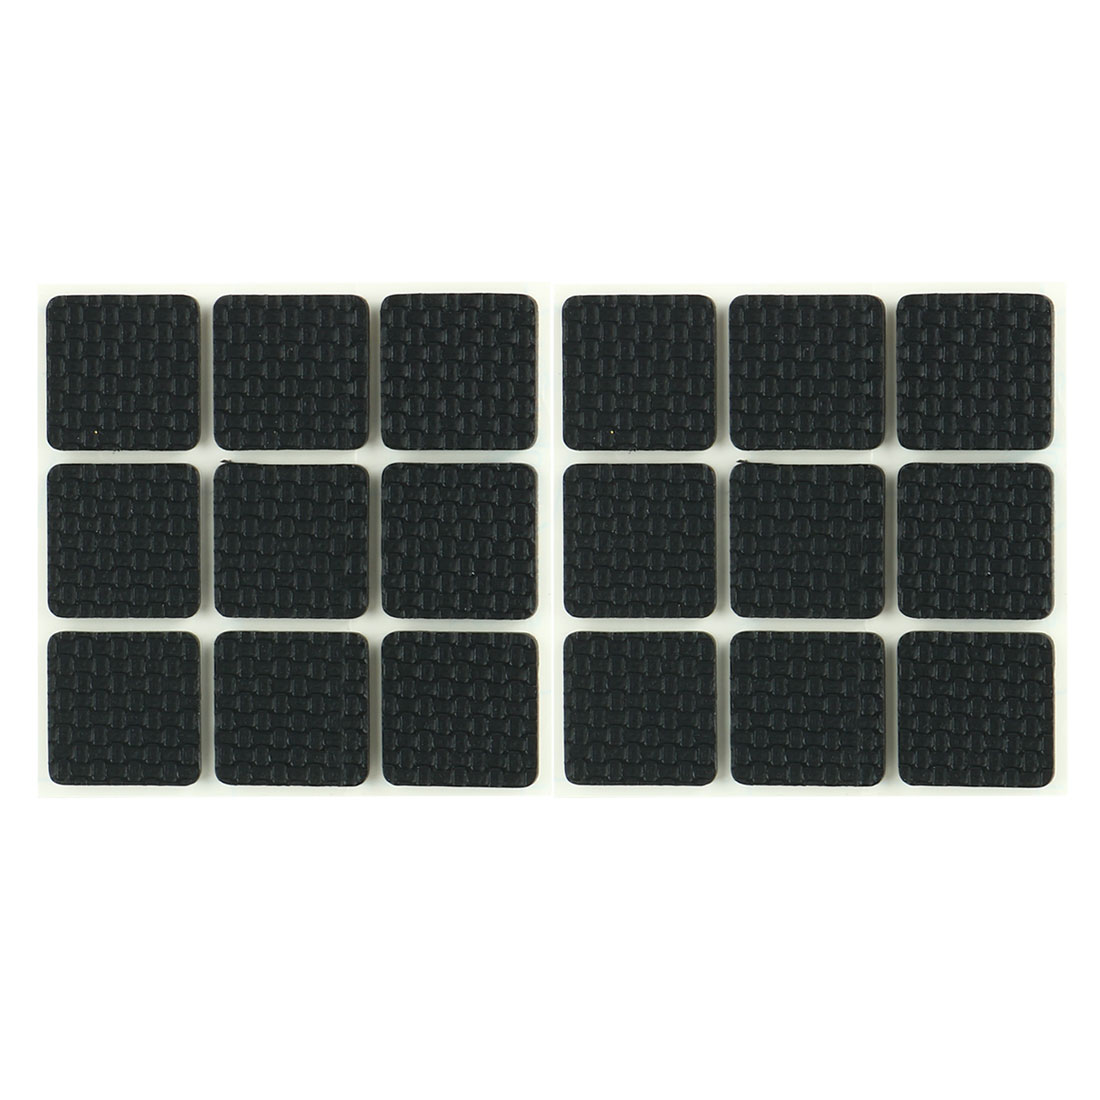 18 Pcs Square Shaped Black Foam Adhesive Protection Pad Mat for Chair Leg